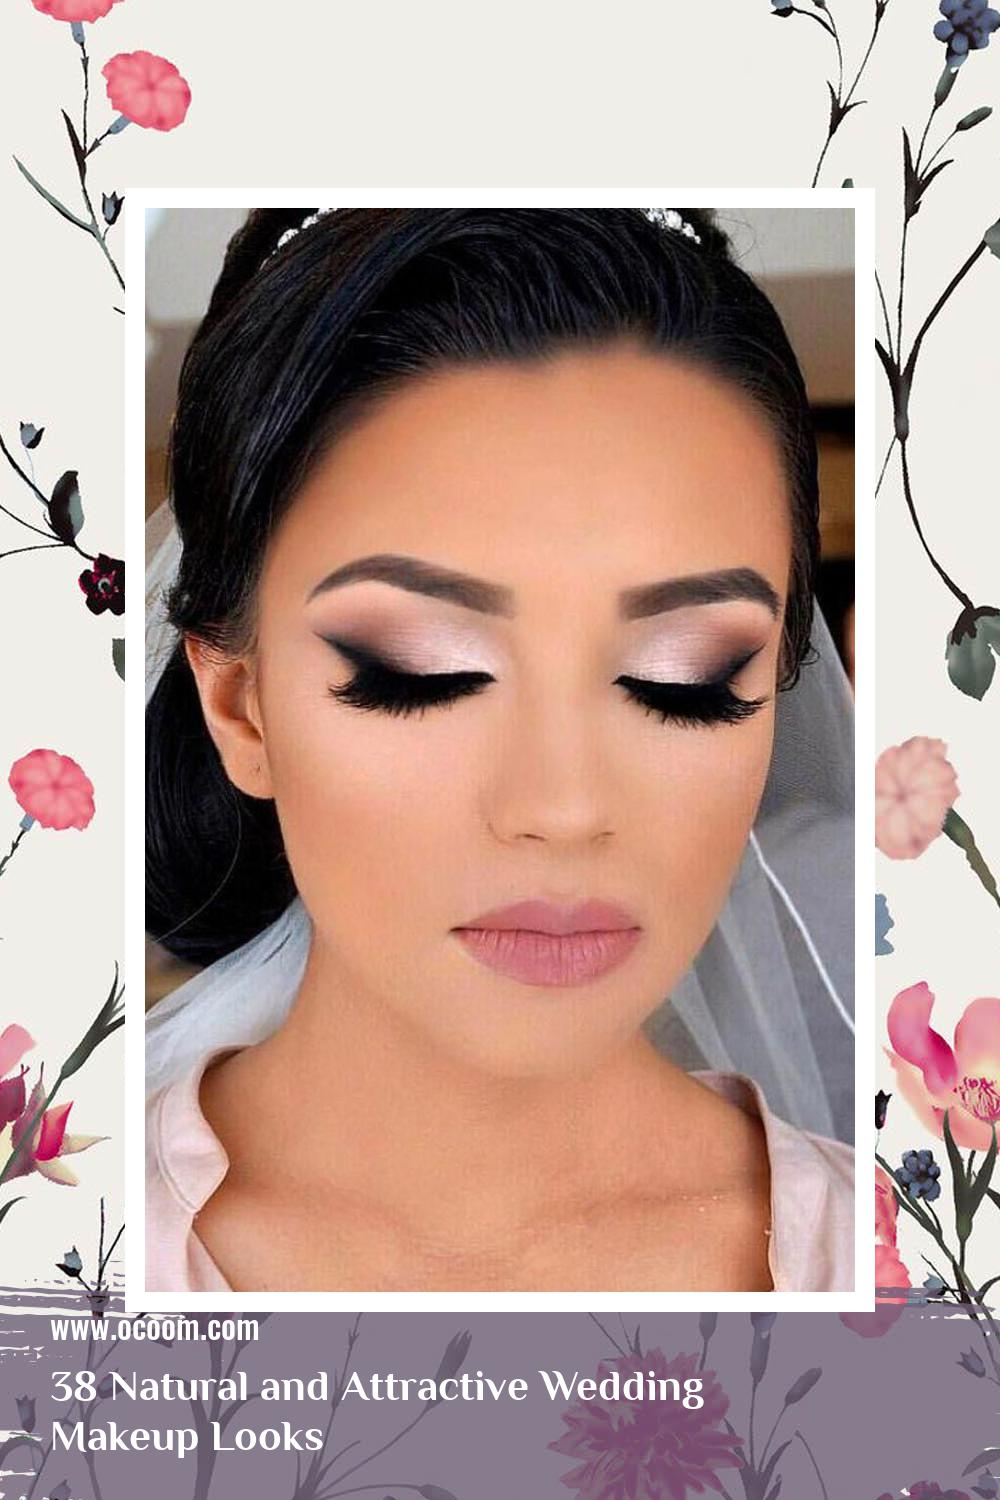 38 Natural and Attractive Wedding Makeup Looks 35